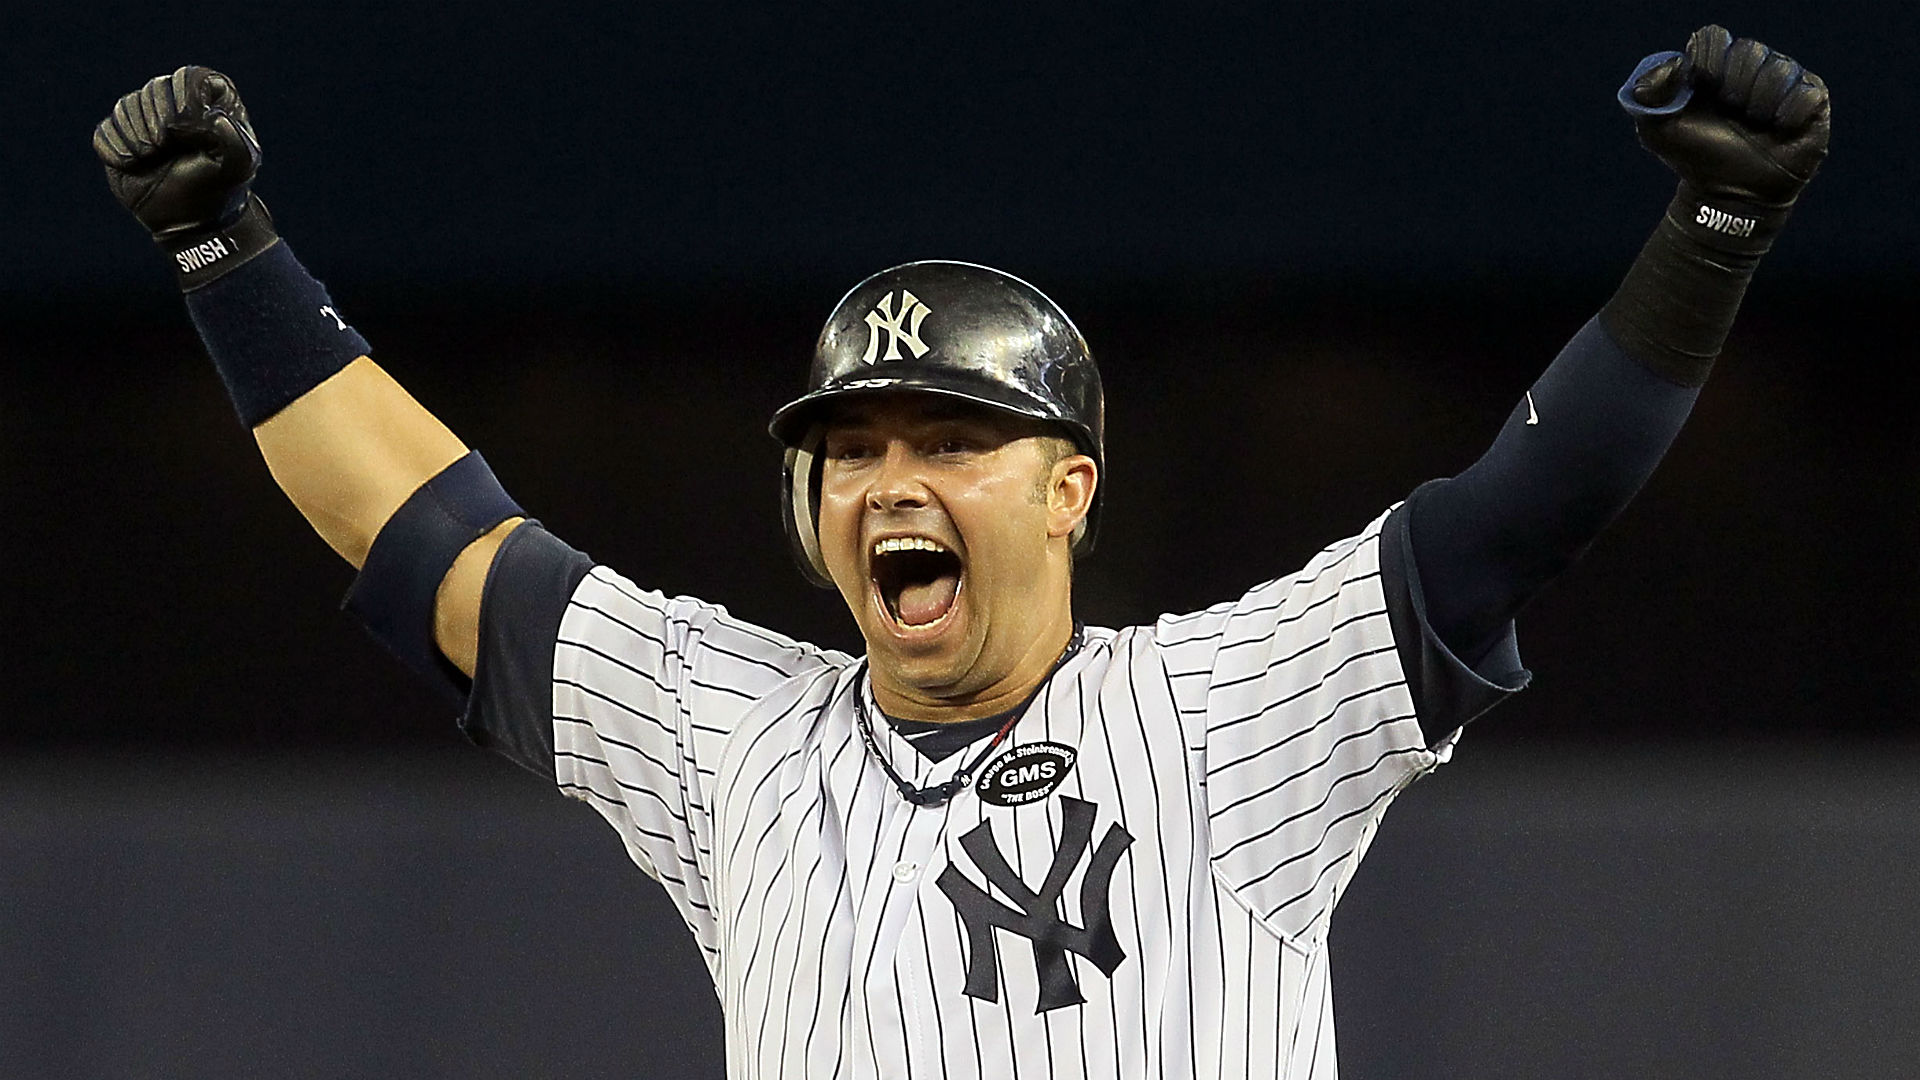 Nov. 13, 2008: When the Yankees brought Nick Swisher and sunshine ...